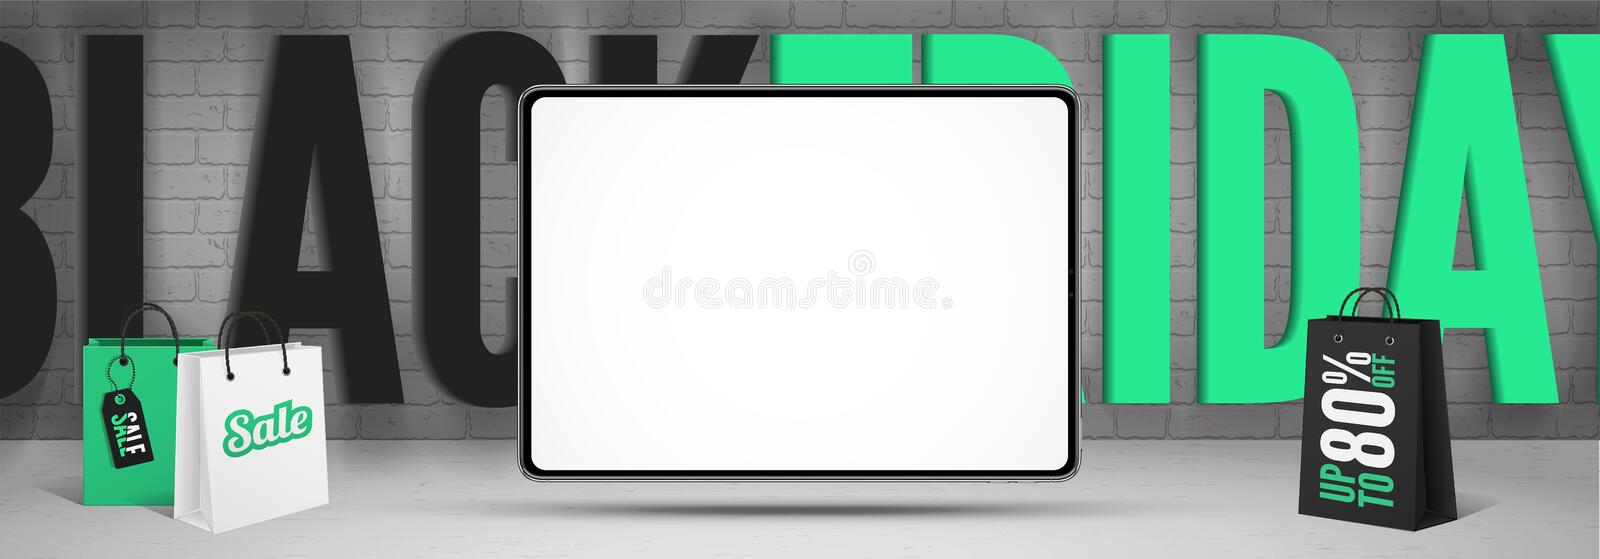 Black friday gadgets sale banner template with tablet blank screen. Black friday gadgets sale banner template. Realistic tablet mockup with blank screen and text vector illustration